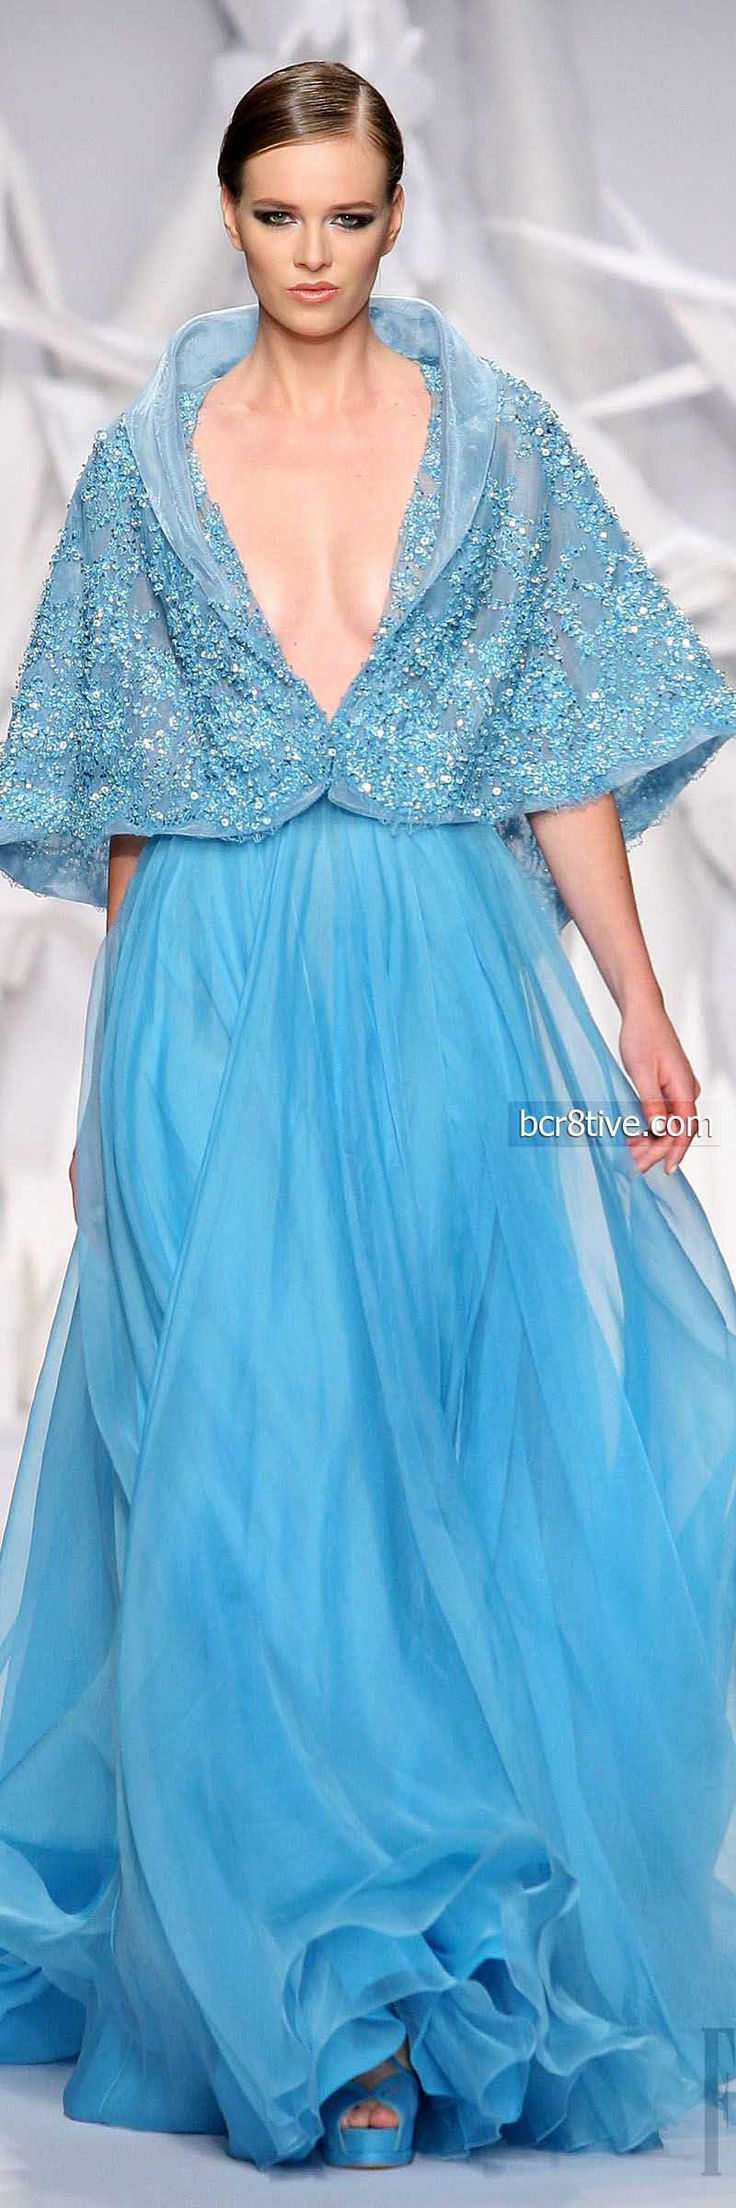 33 best FASHION images on Pinterest | Evening gowns, Evening ...